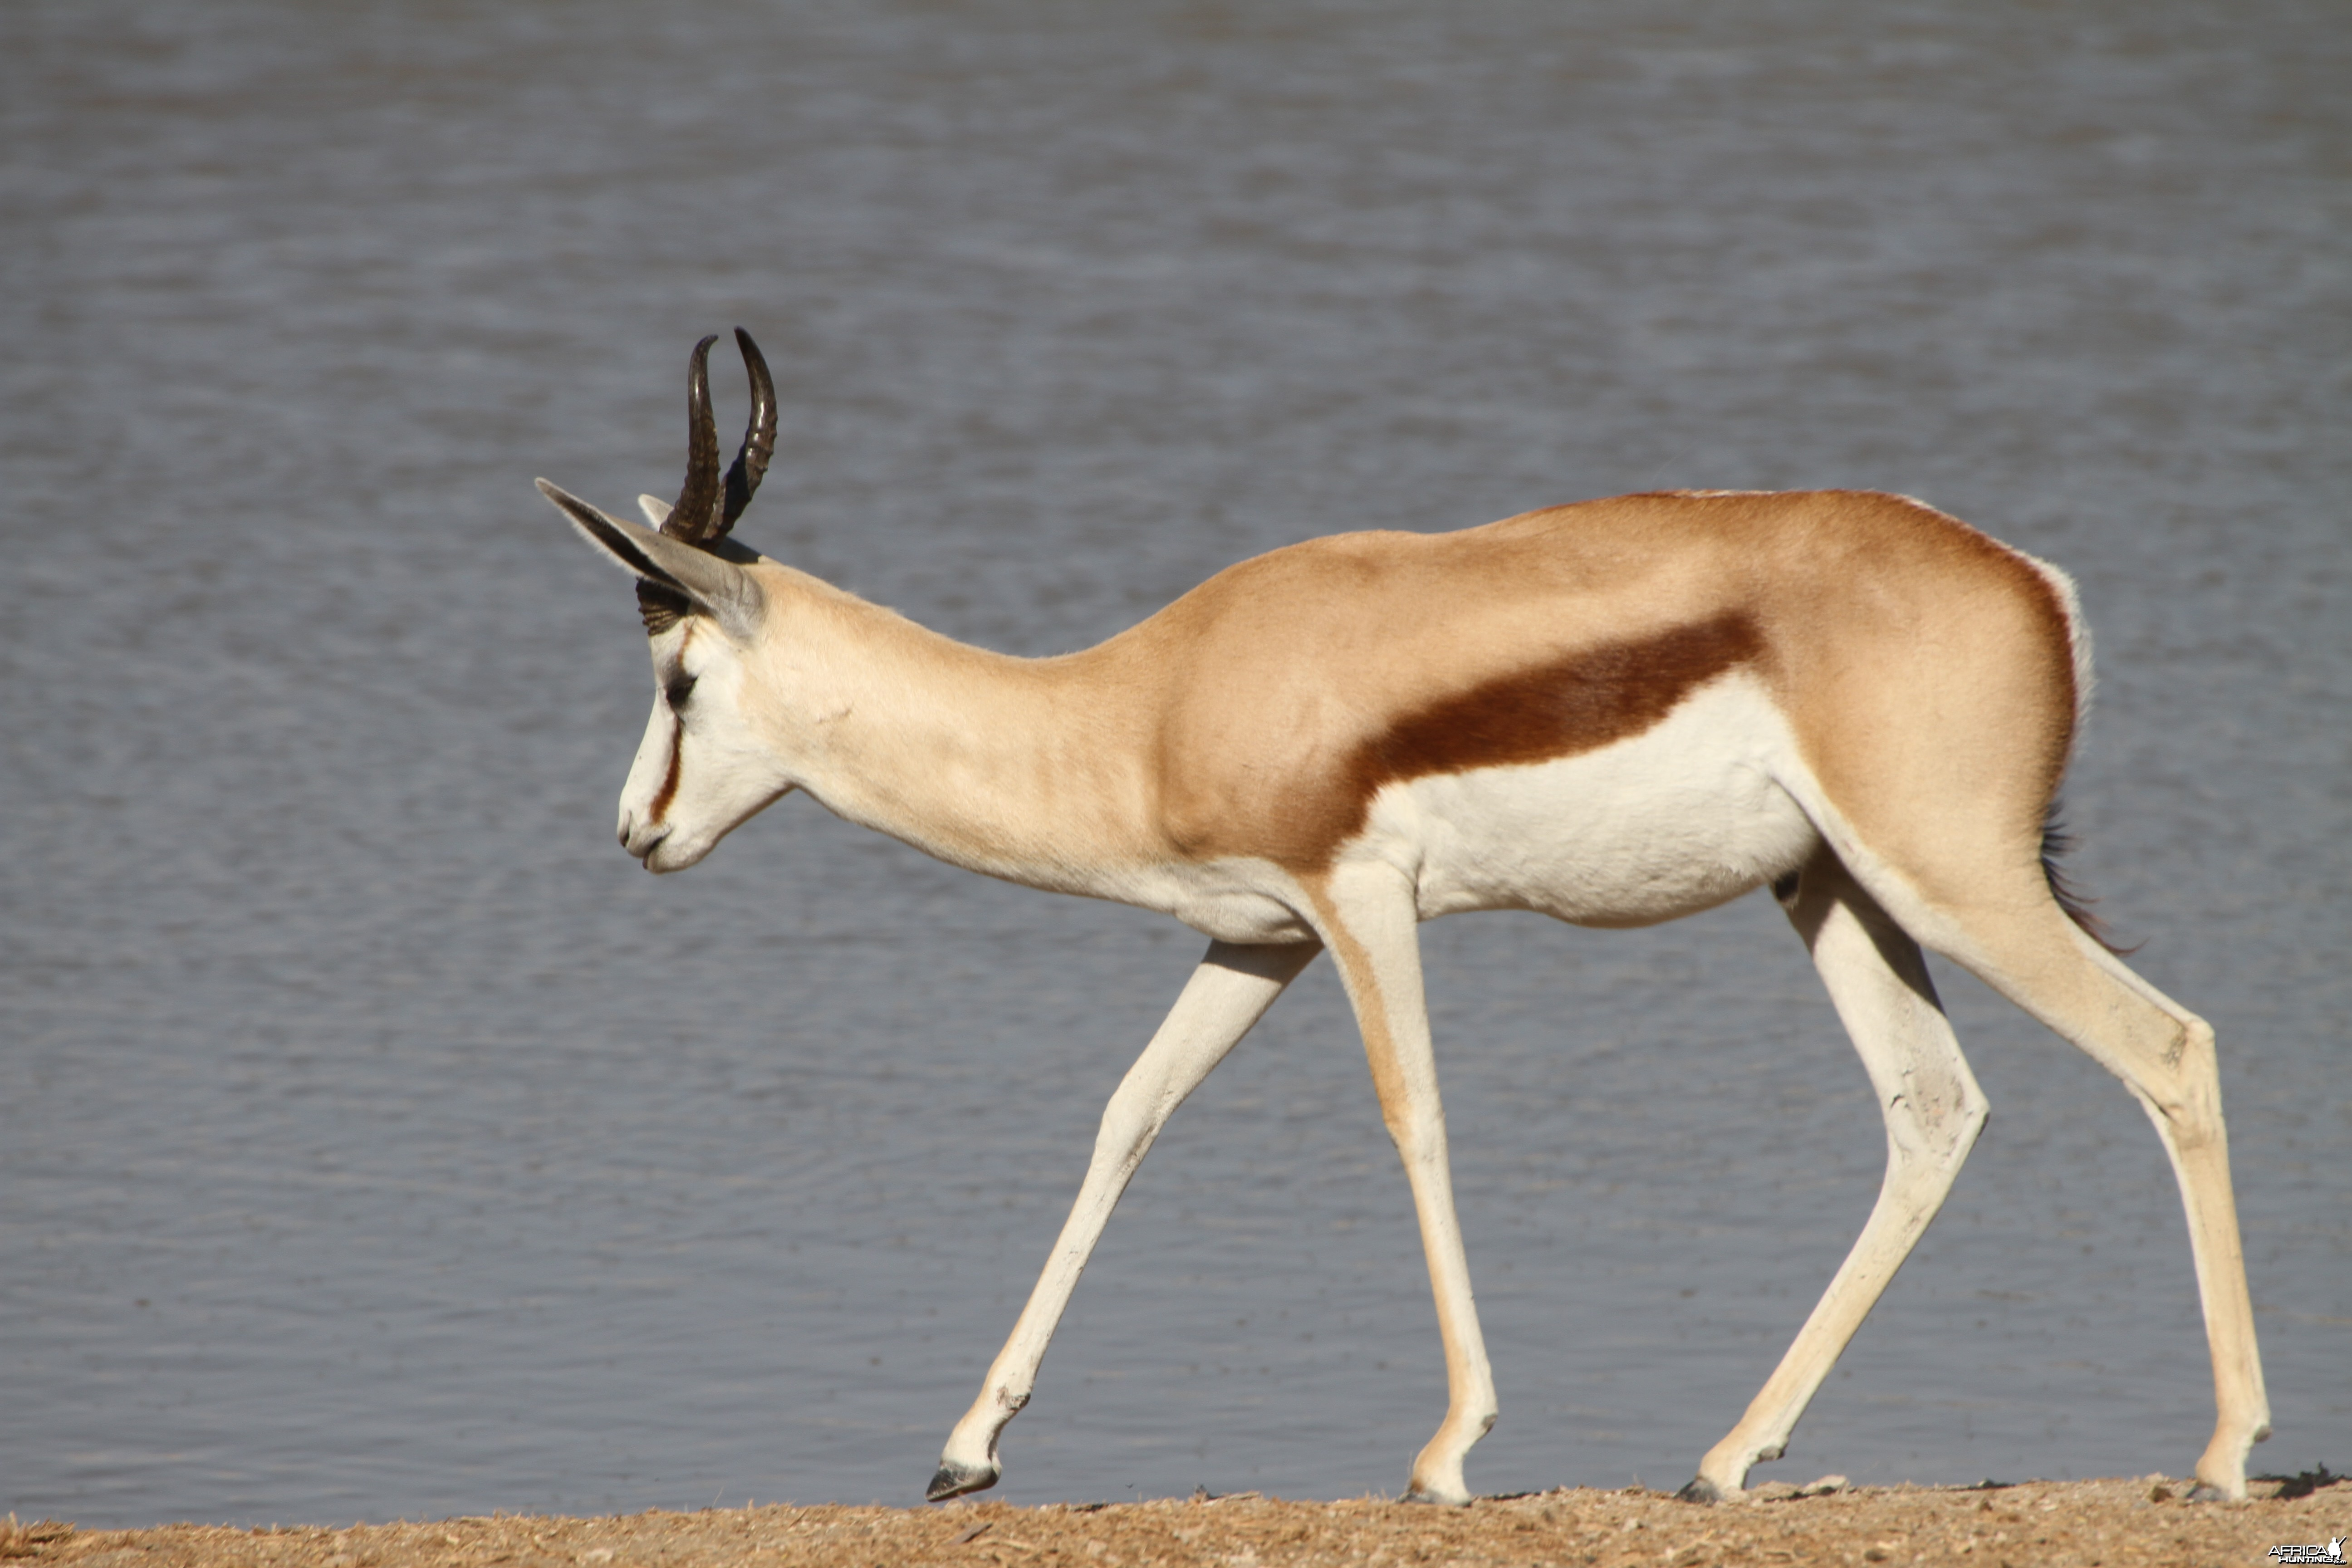 Springbok at Etosha National Park